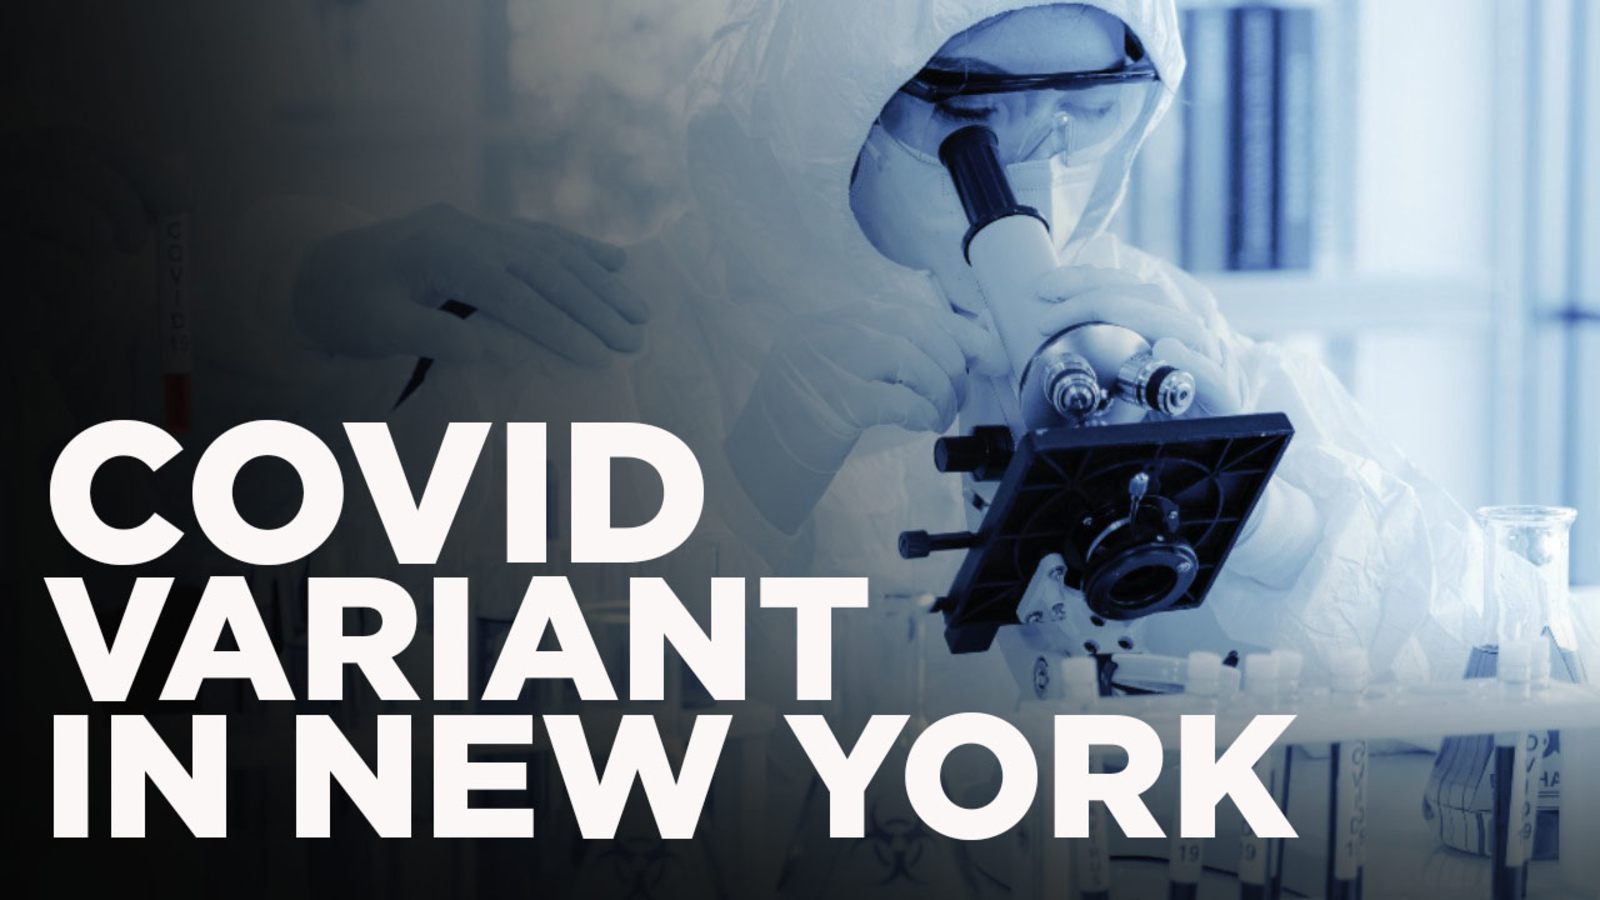 Coronavirus Update New York City: Concern over new COVID variant found in NYC area